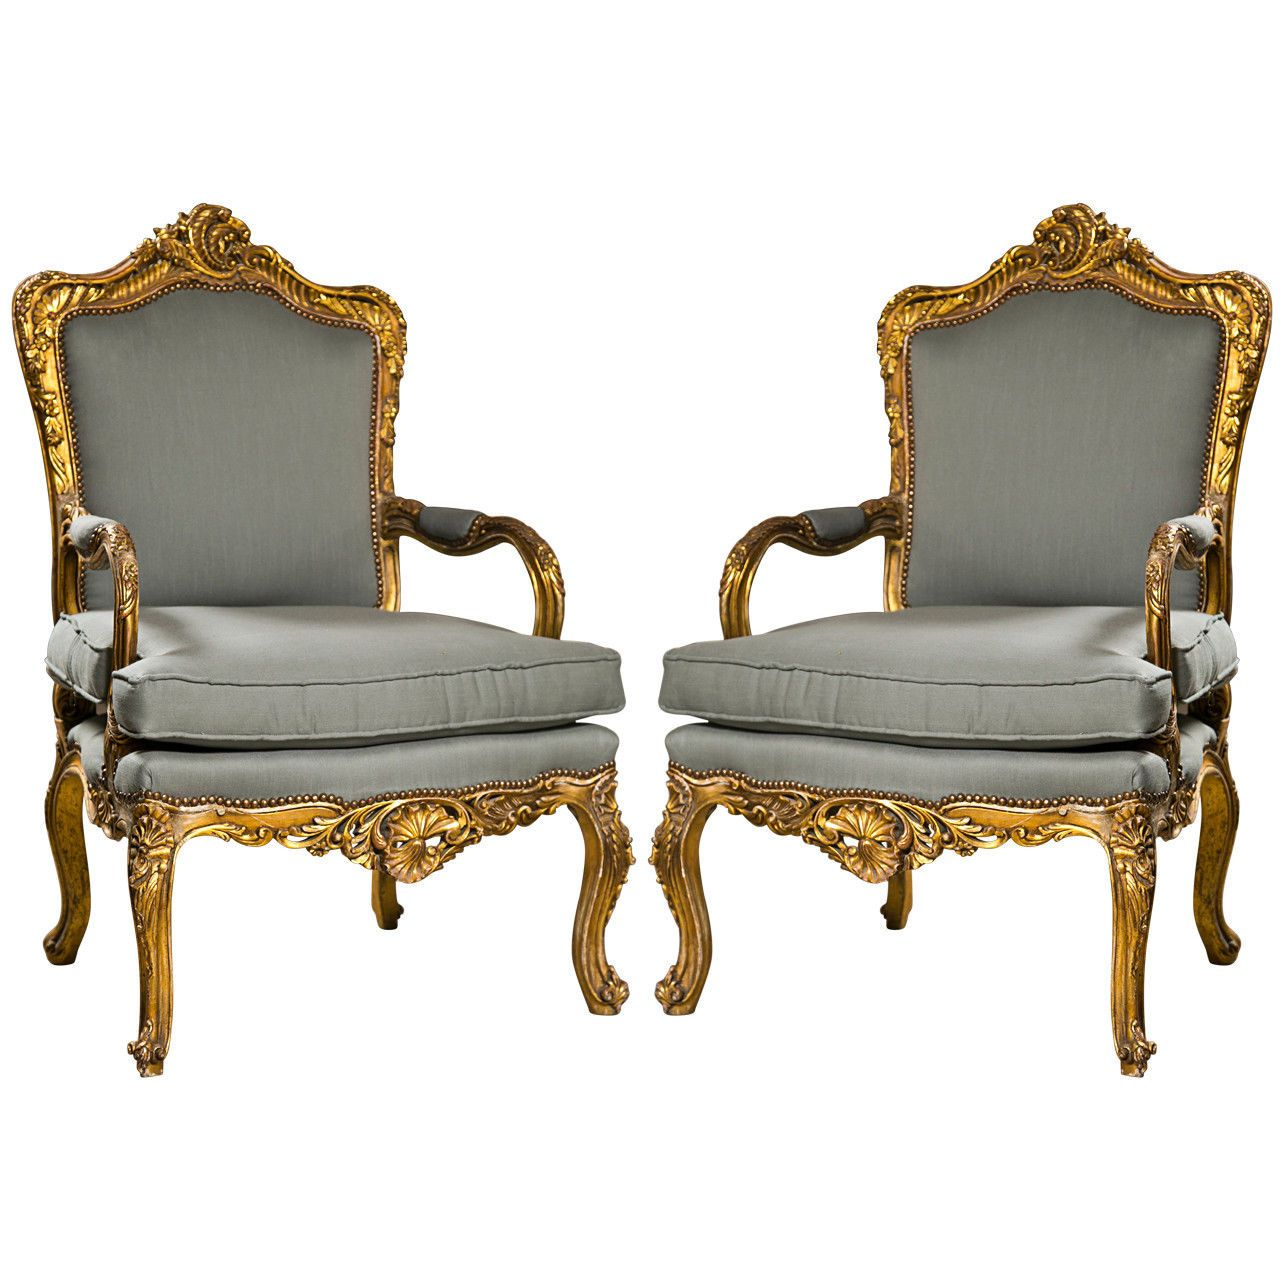 Styles Fauteuils Pair Of French Rococo Revival Style Giltwood Arm Chairs Fauteuils